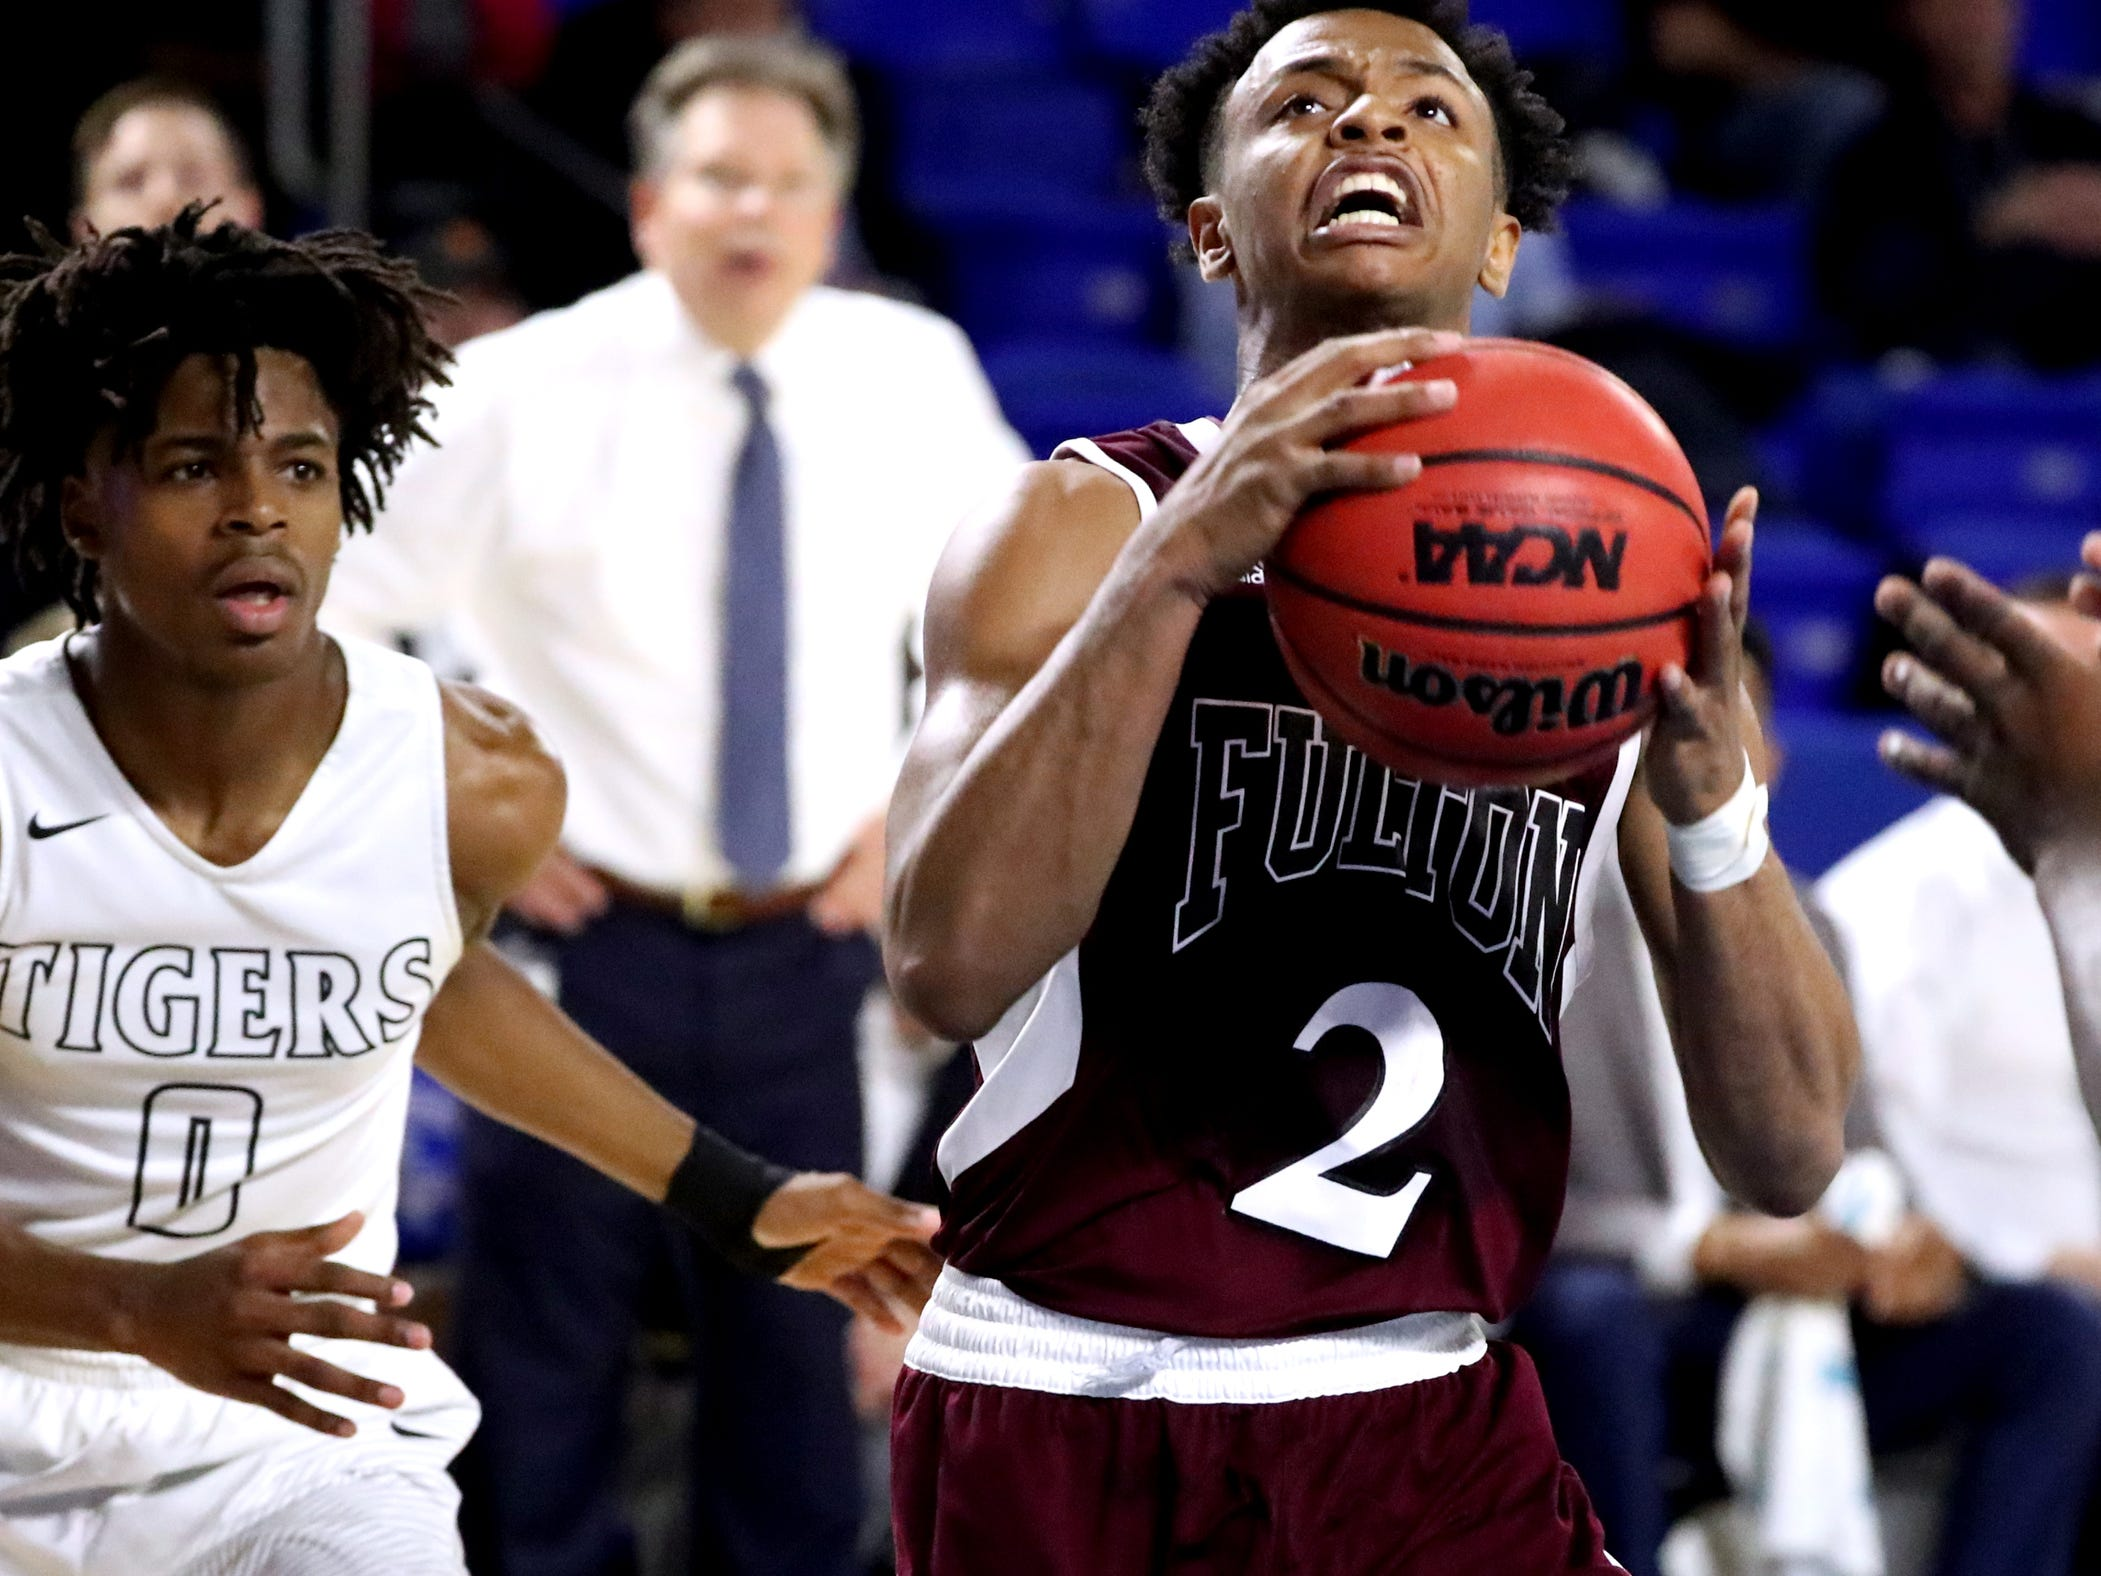 Fulton's Ron Davis III (2) ggoes up for a shot  as Mitchell's Michael Rice (0) moves in to guard him during the quarterfinal round of the TSSAA Class AA Boys State Tournament, on Wednesday, March 13, 2019, at Murphy Center in Murfreesboro, Tenn.